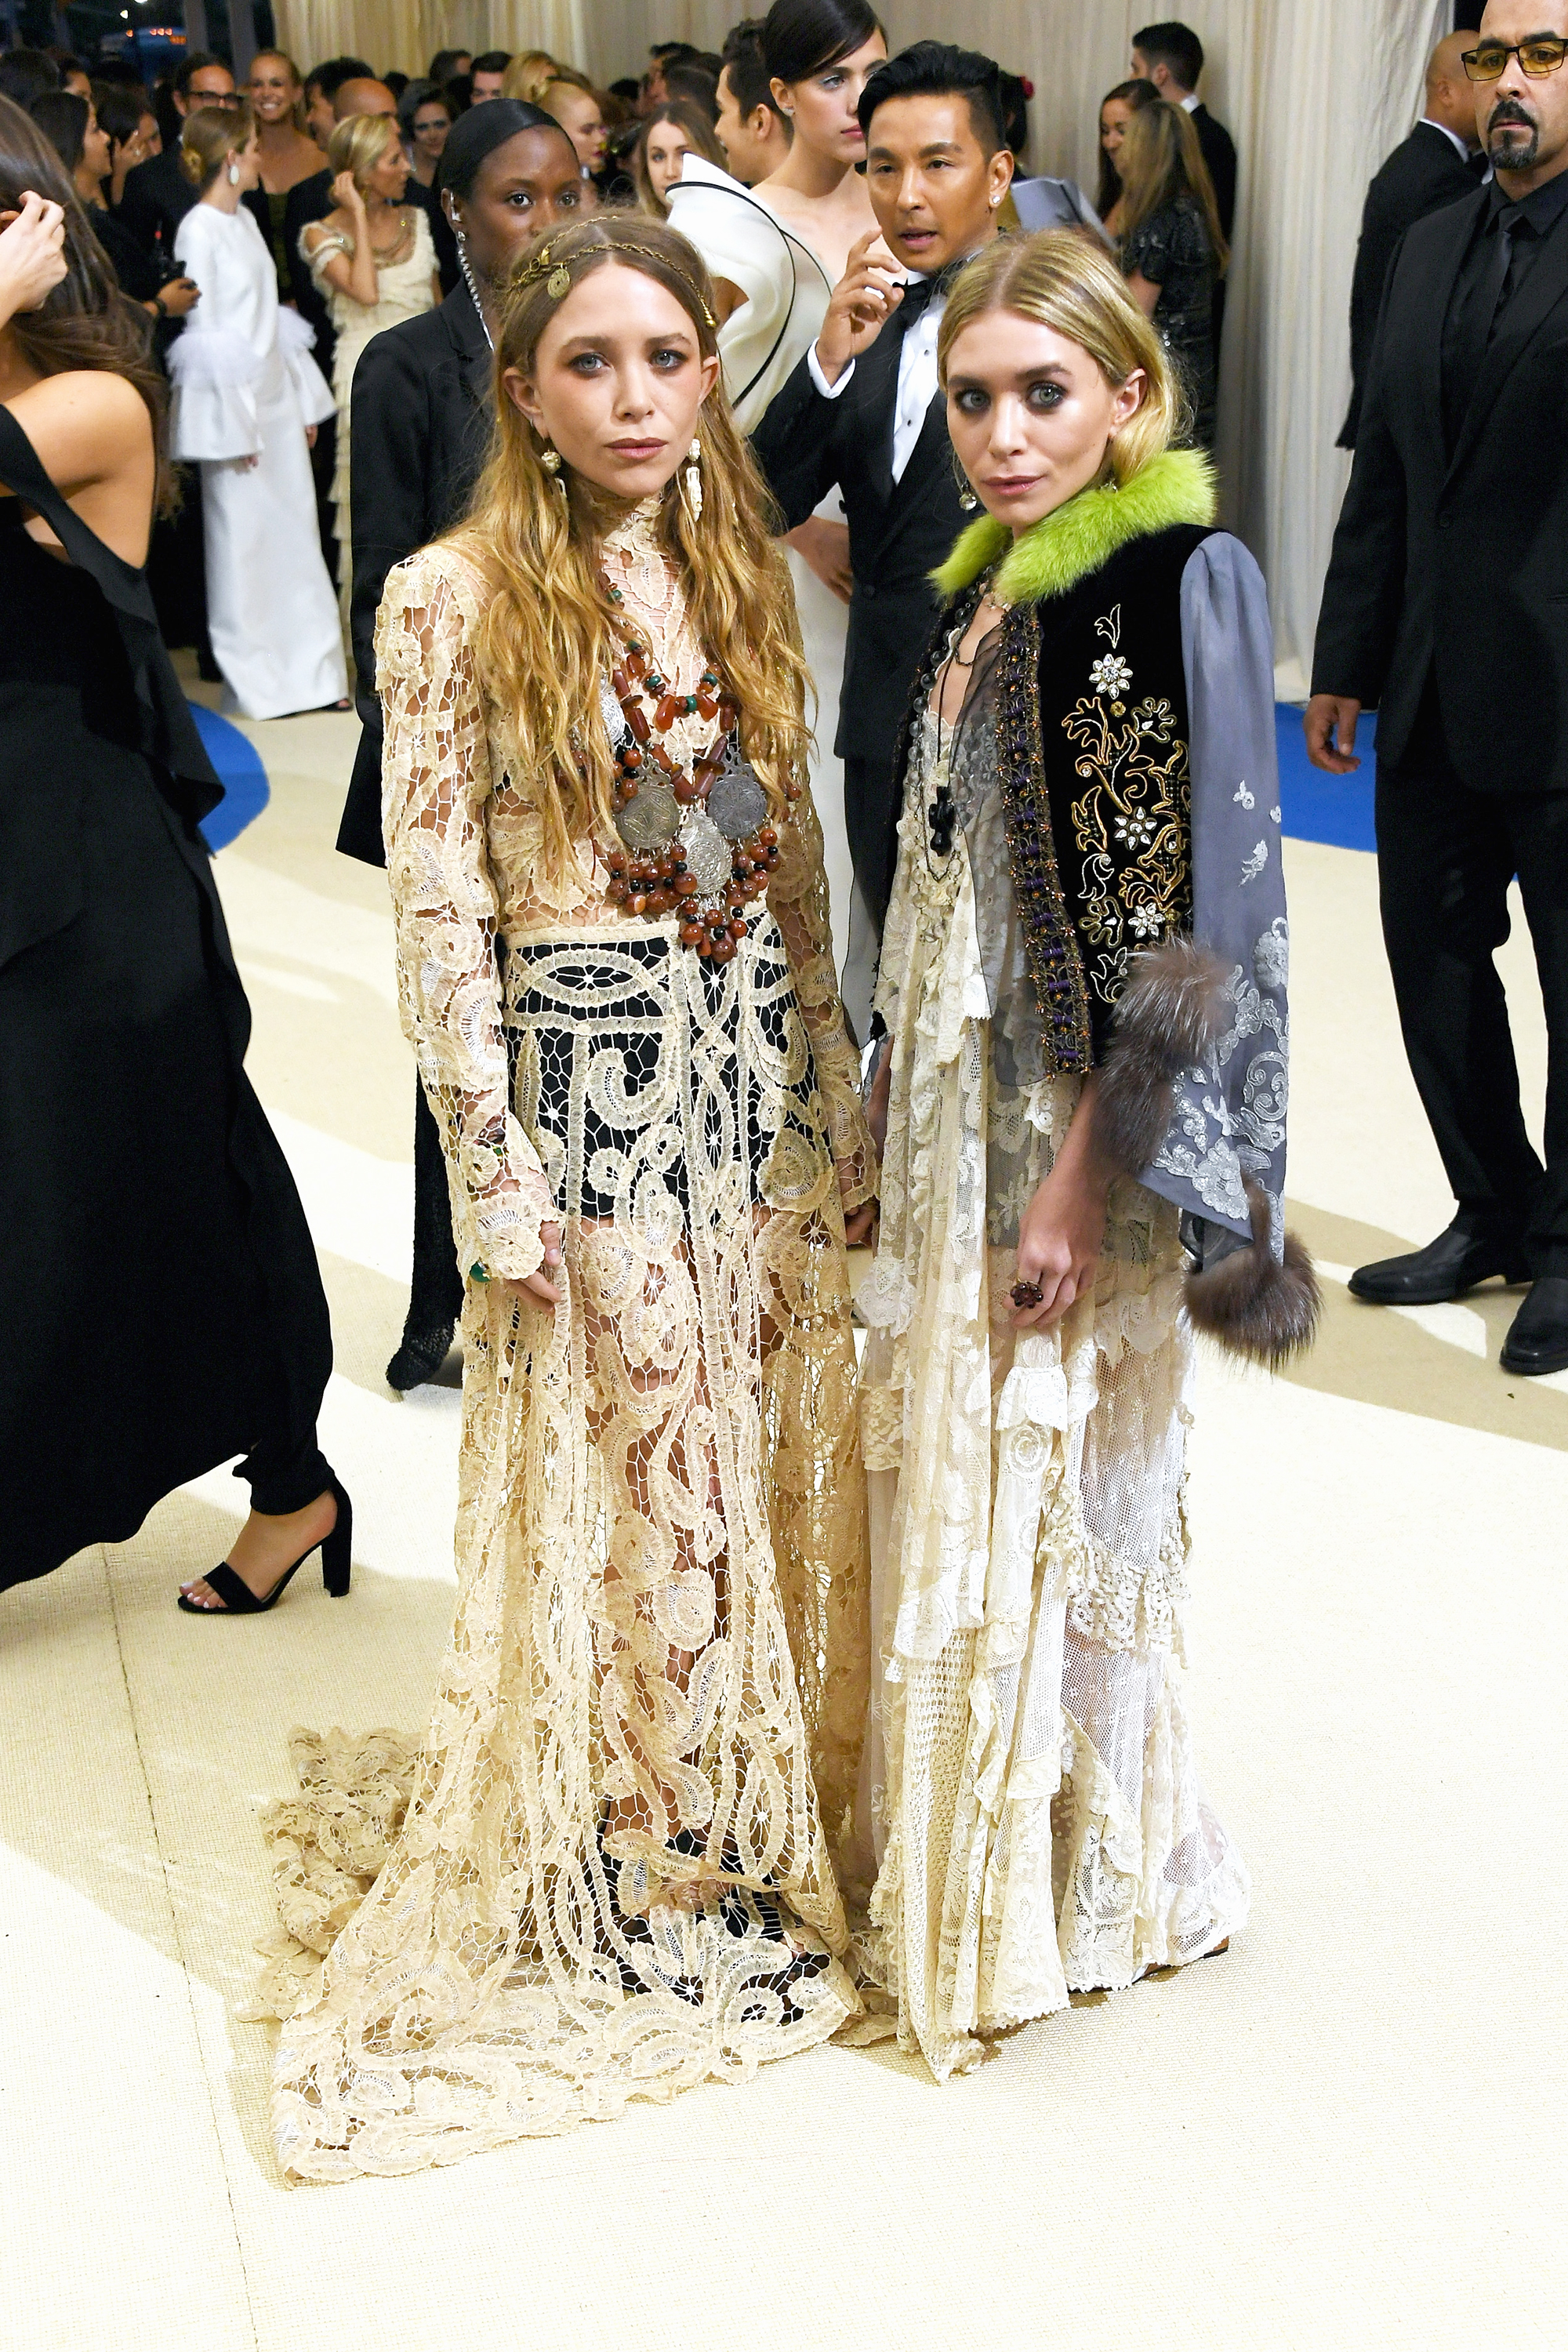 Mary-Kate and Ashley Olsen attend The Metropolitan Museum of Art's Costume Institute benefit gala celebrating the opening of the Rei Kawakubo/Comme des Garçons: Art of the In-Between exhibition in New York City, on May 1, 2017.